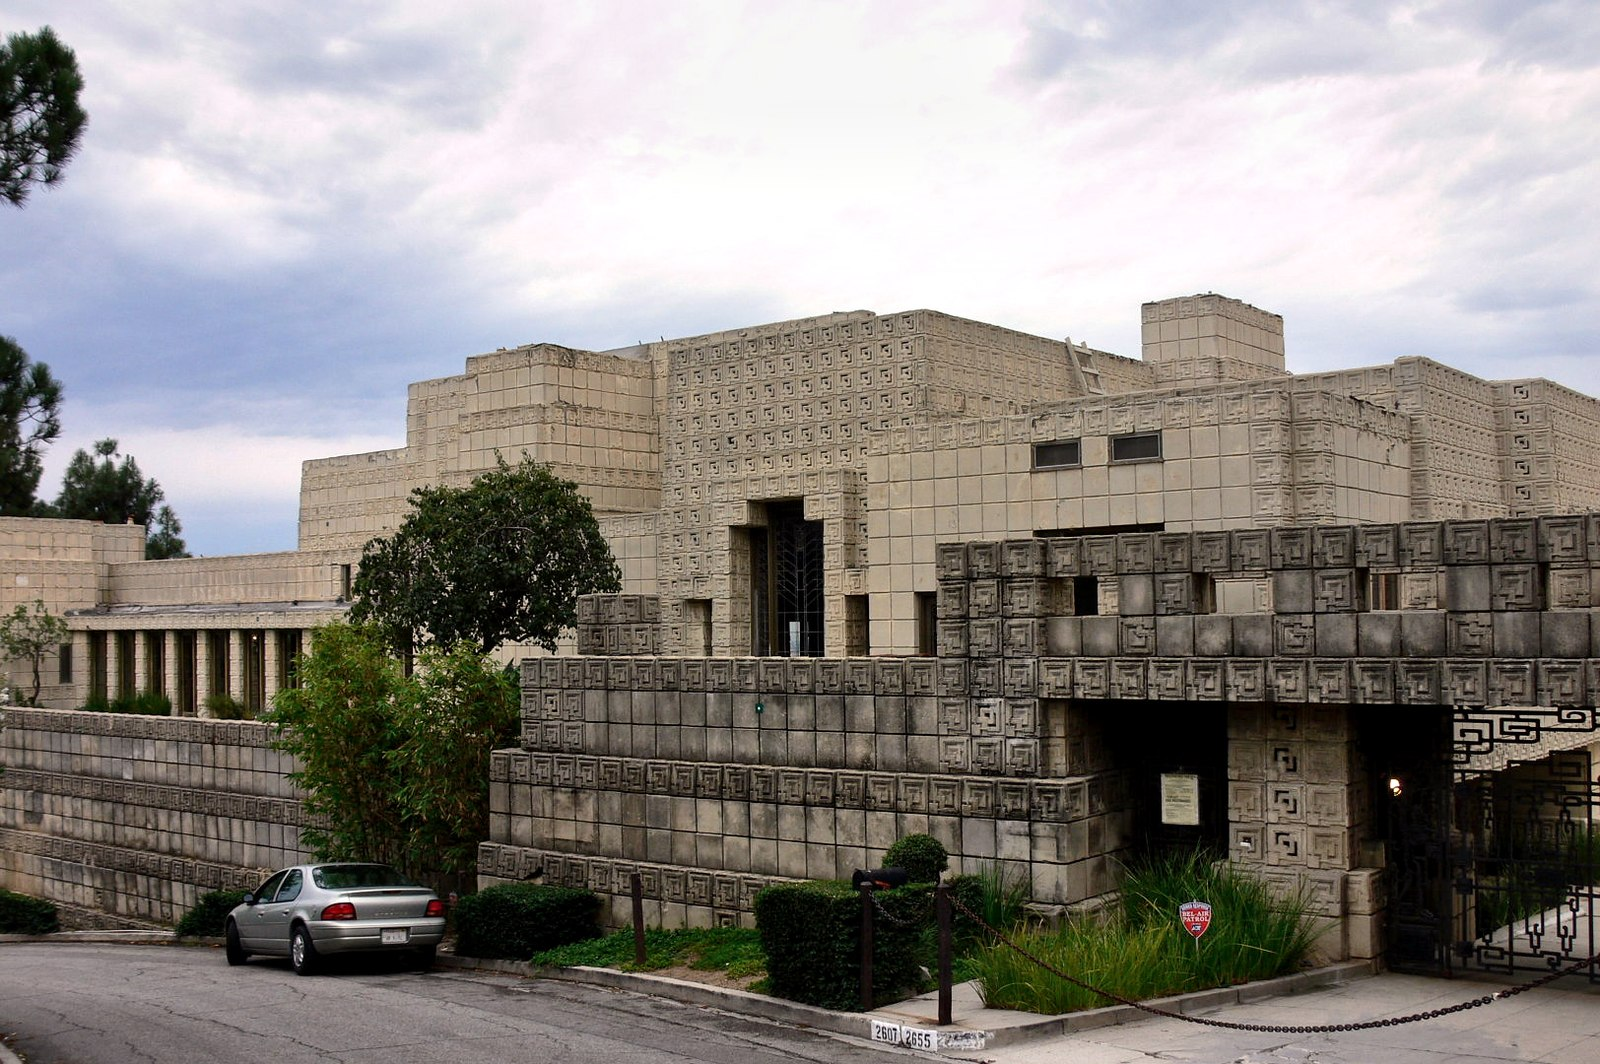 Ennis House, 1924, Frank Lloyd Wright — a Textile style/Mayan Revival home